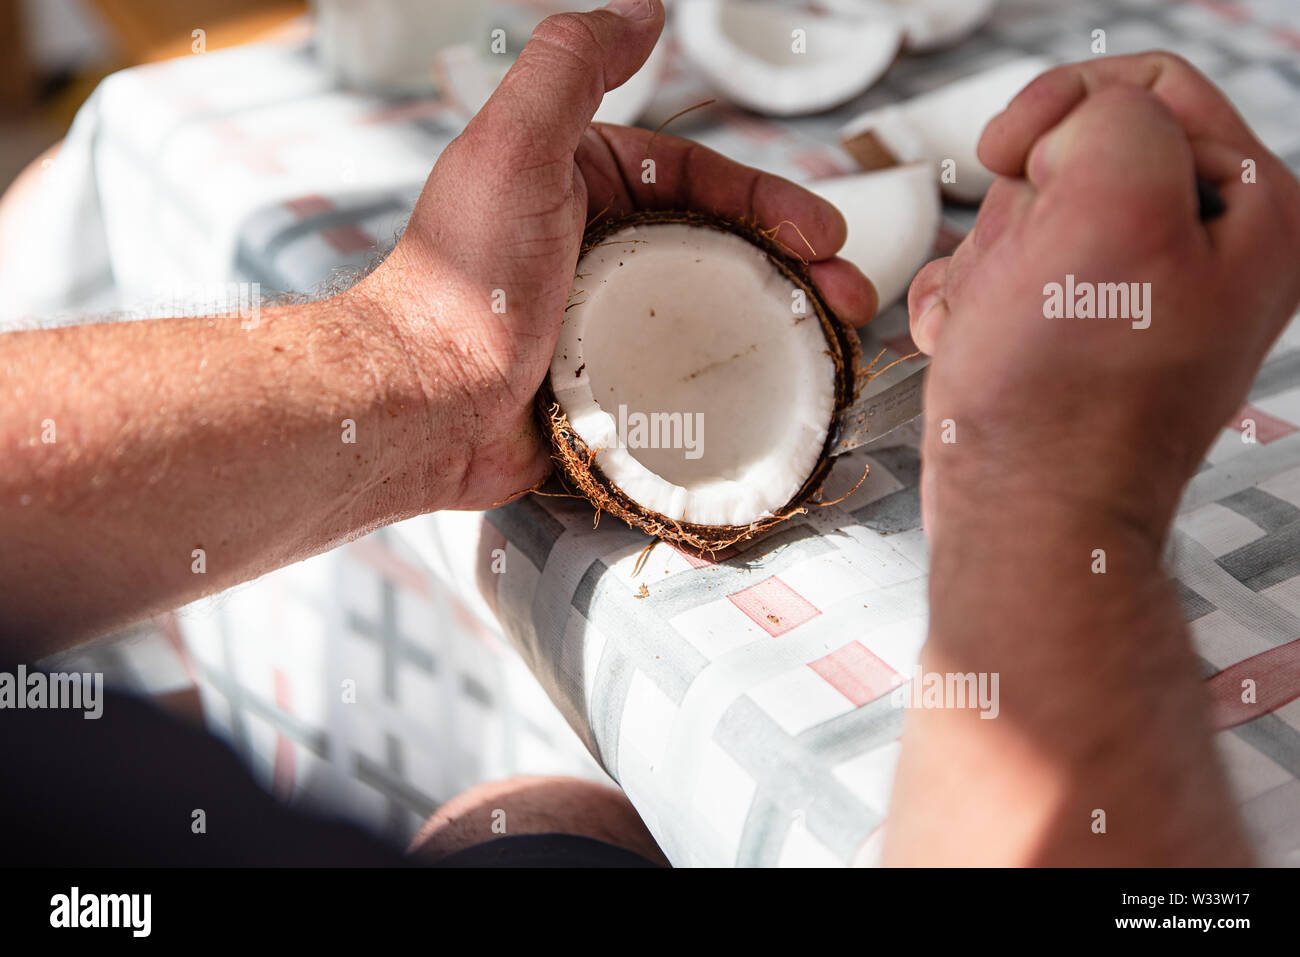 Man cut fresh coconut into pieces, process close up. Exotic food at home Stock Photo